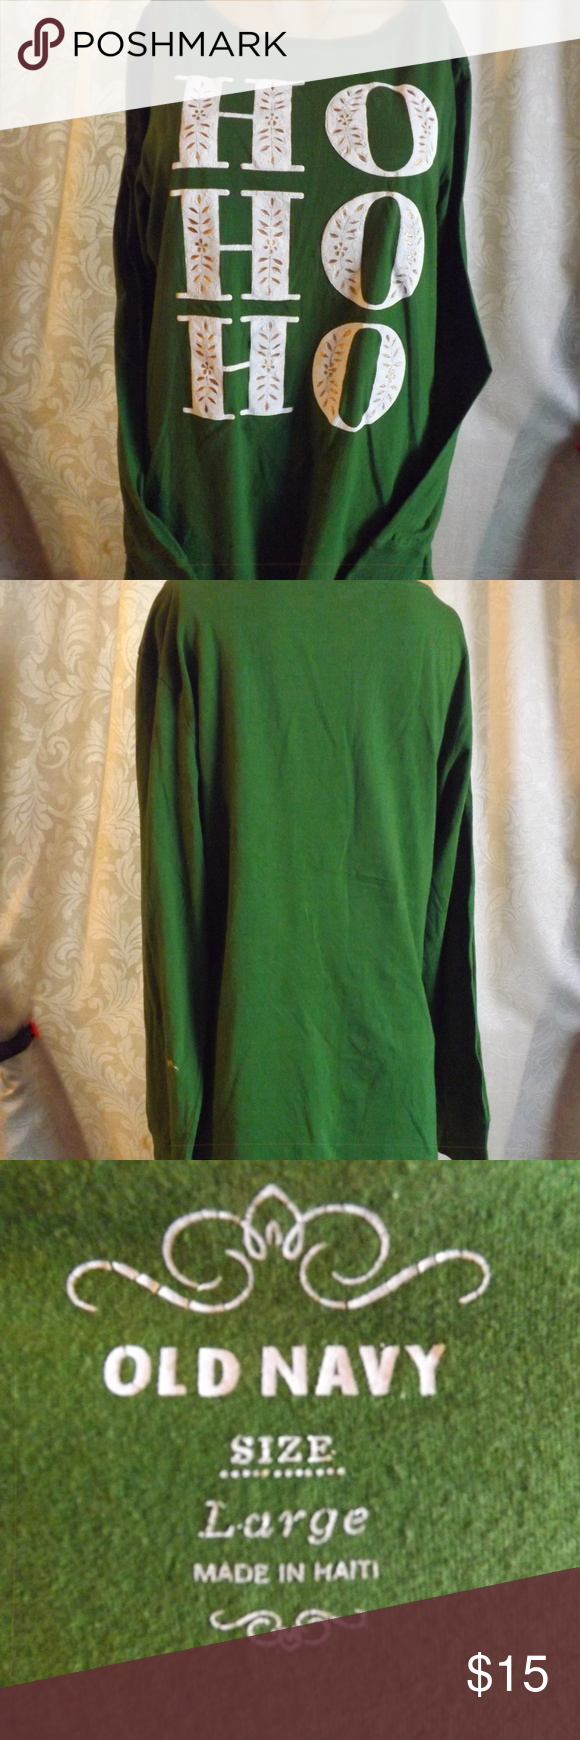 Womens OLD NAVY Christmas Shirt - L/S - Green Sz L in 2018 | My Posh ...